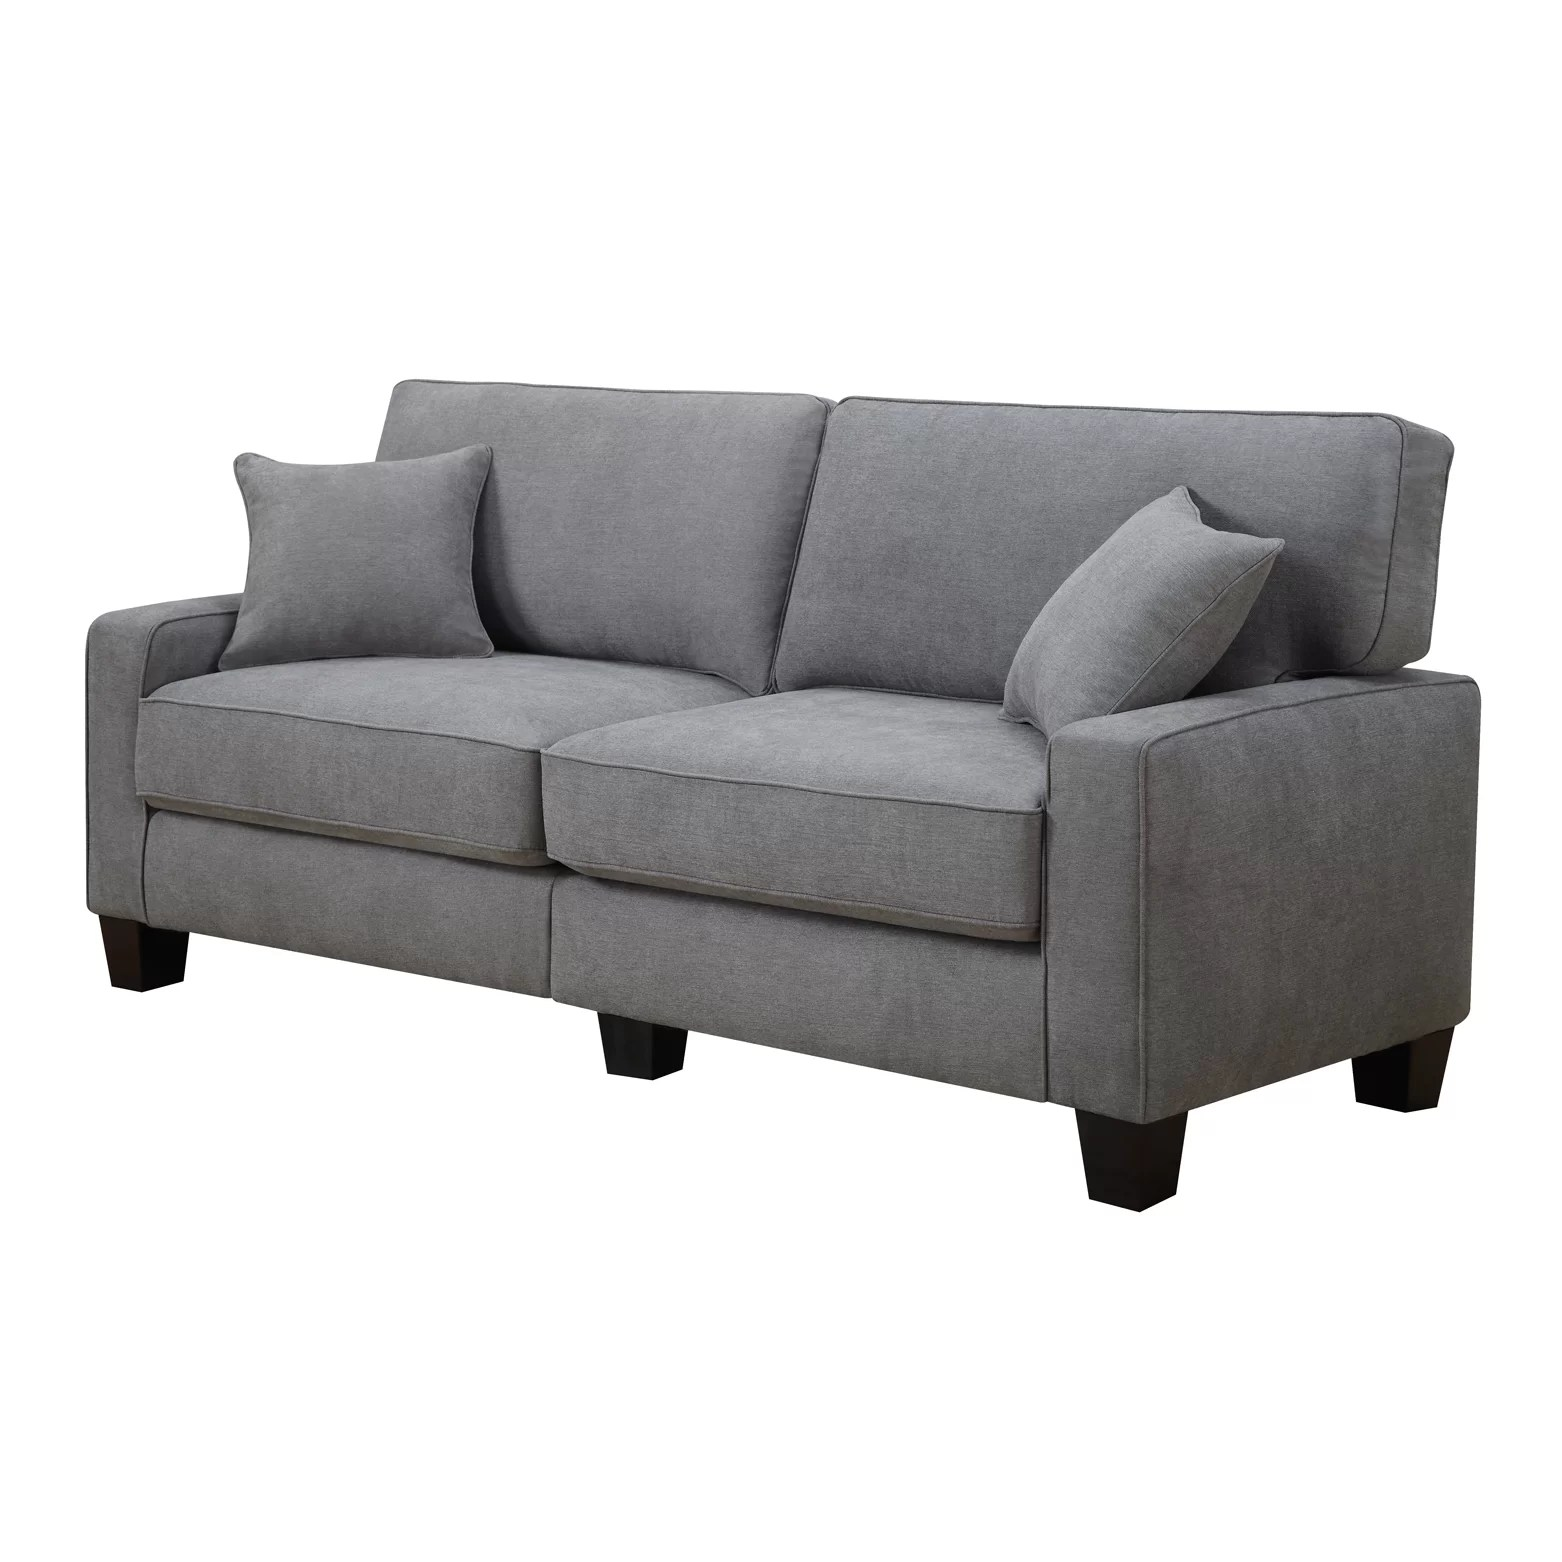 Serta at Home Serta RTA Palisades 73 Sofa  Reviews  Wayfair